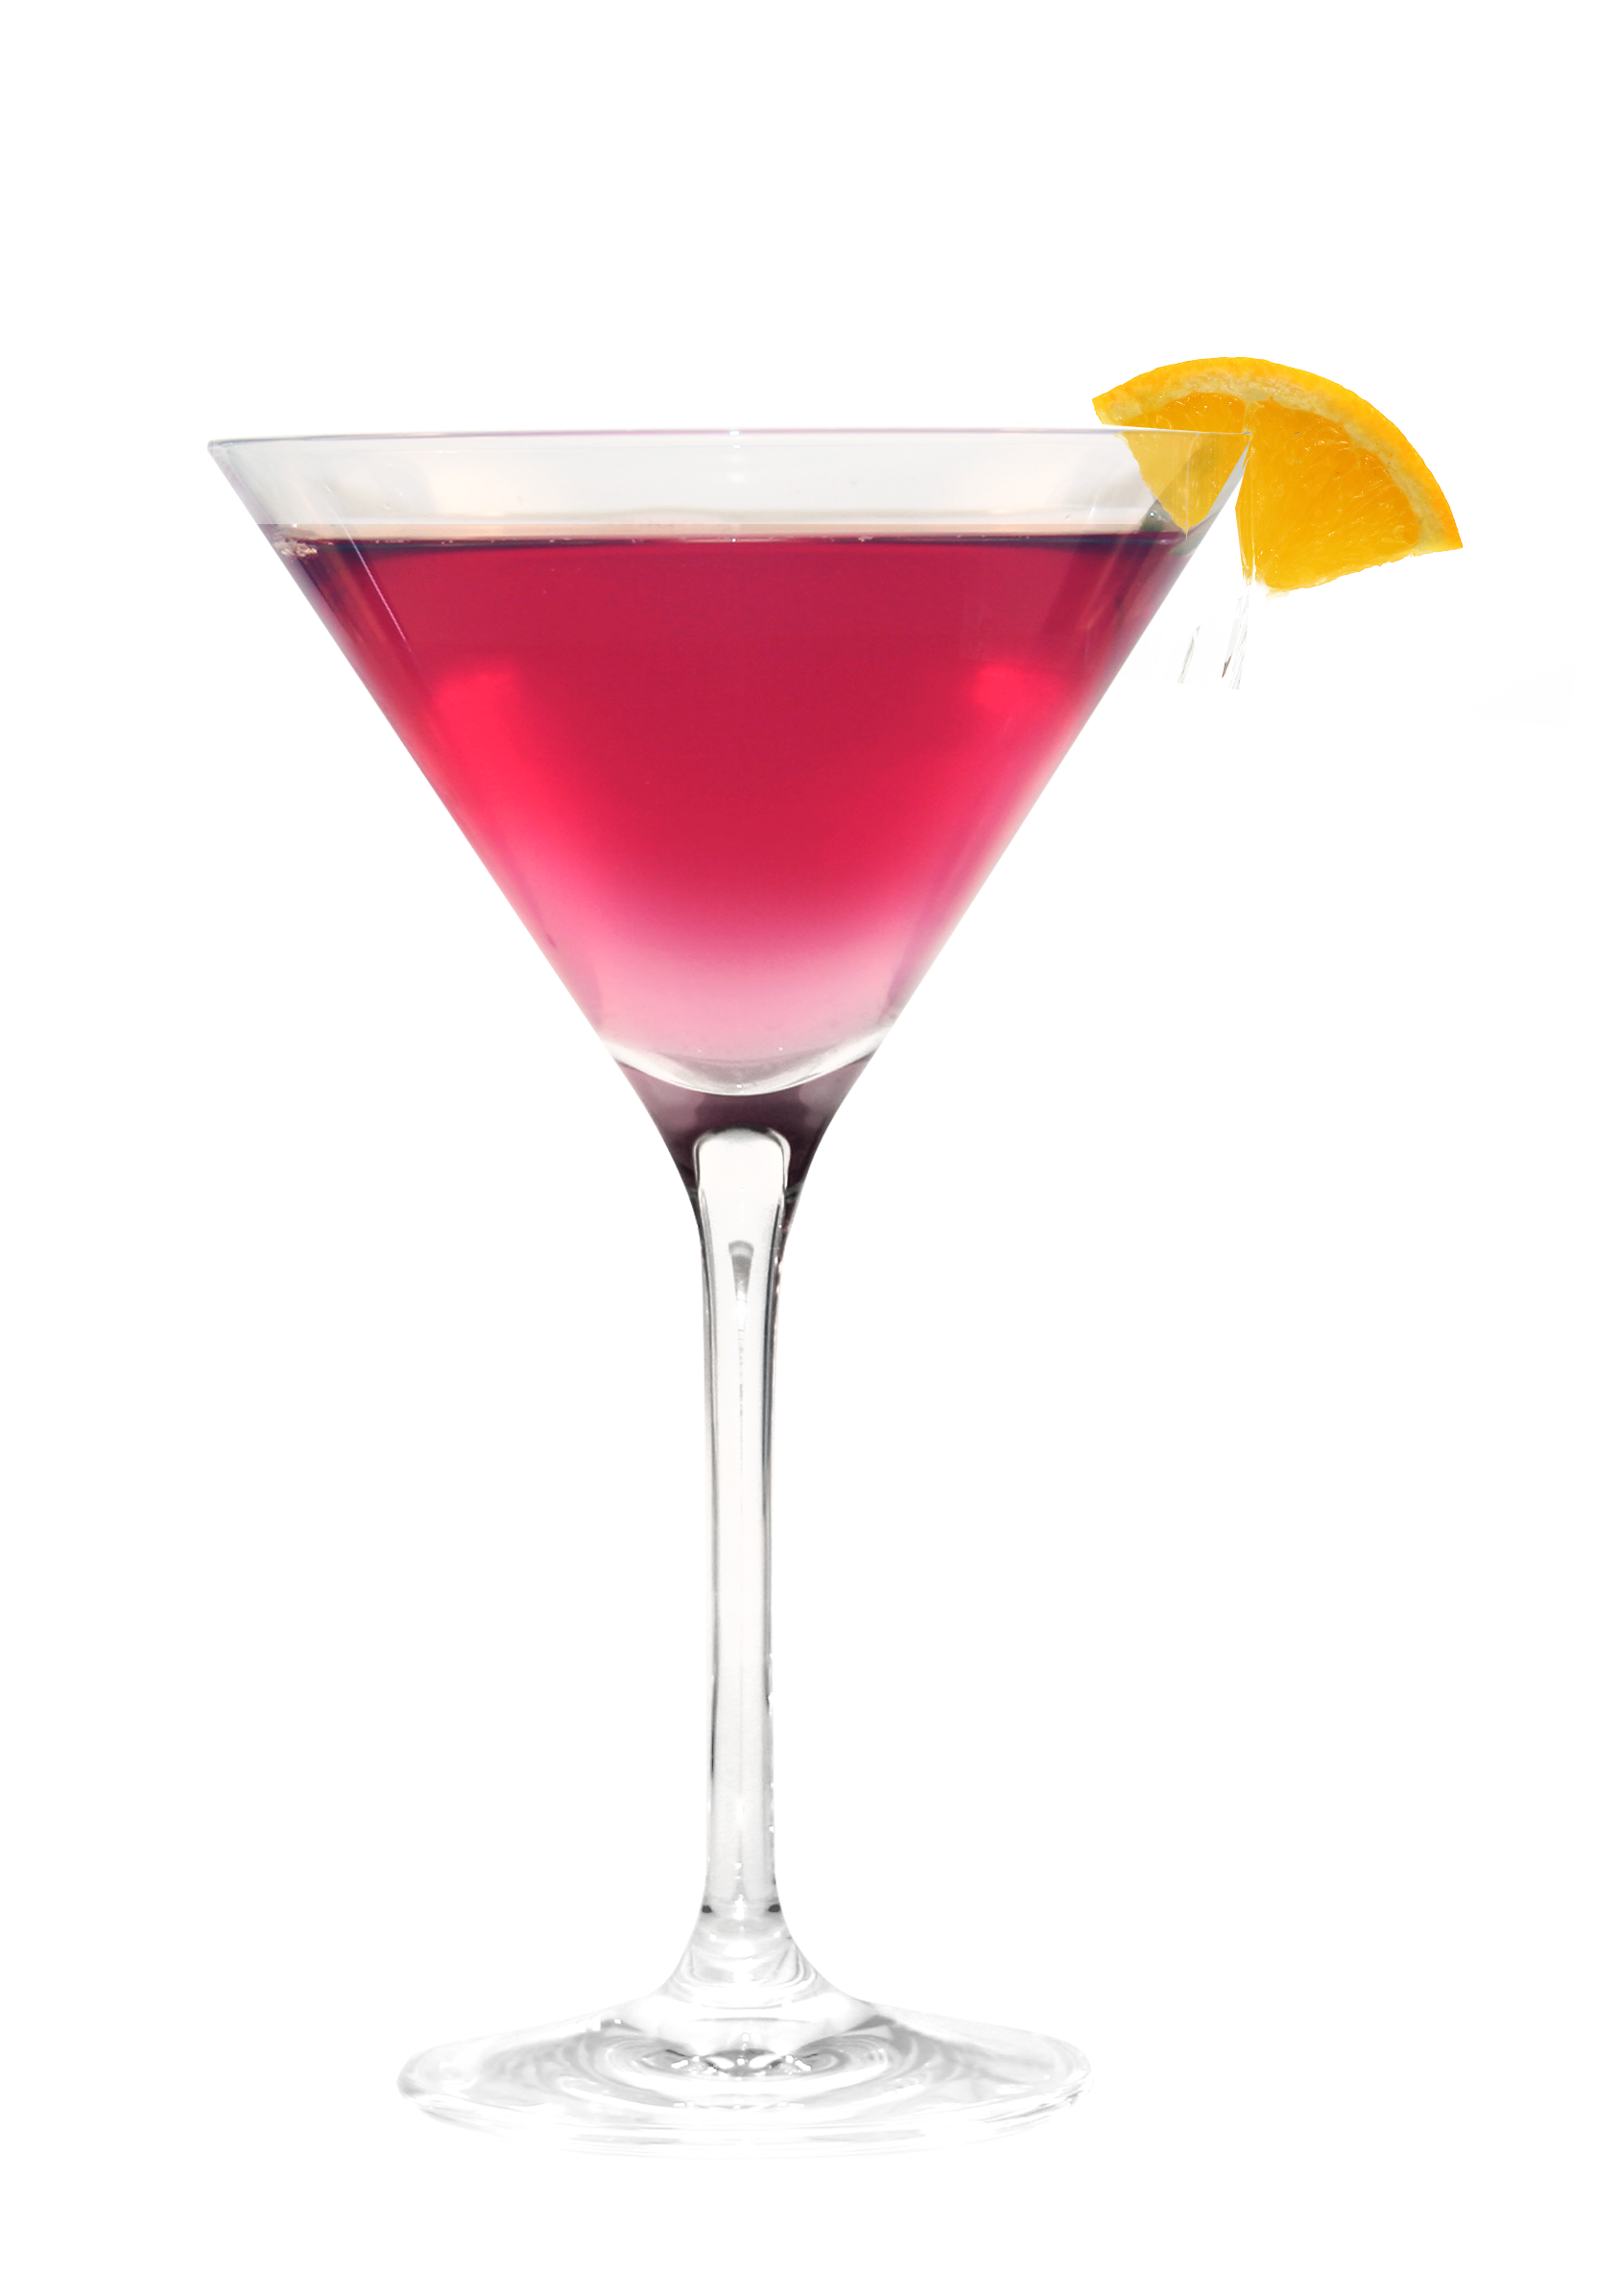 Cocktail PNG HD - Cocktail PNG